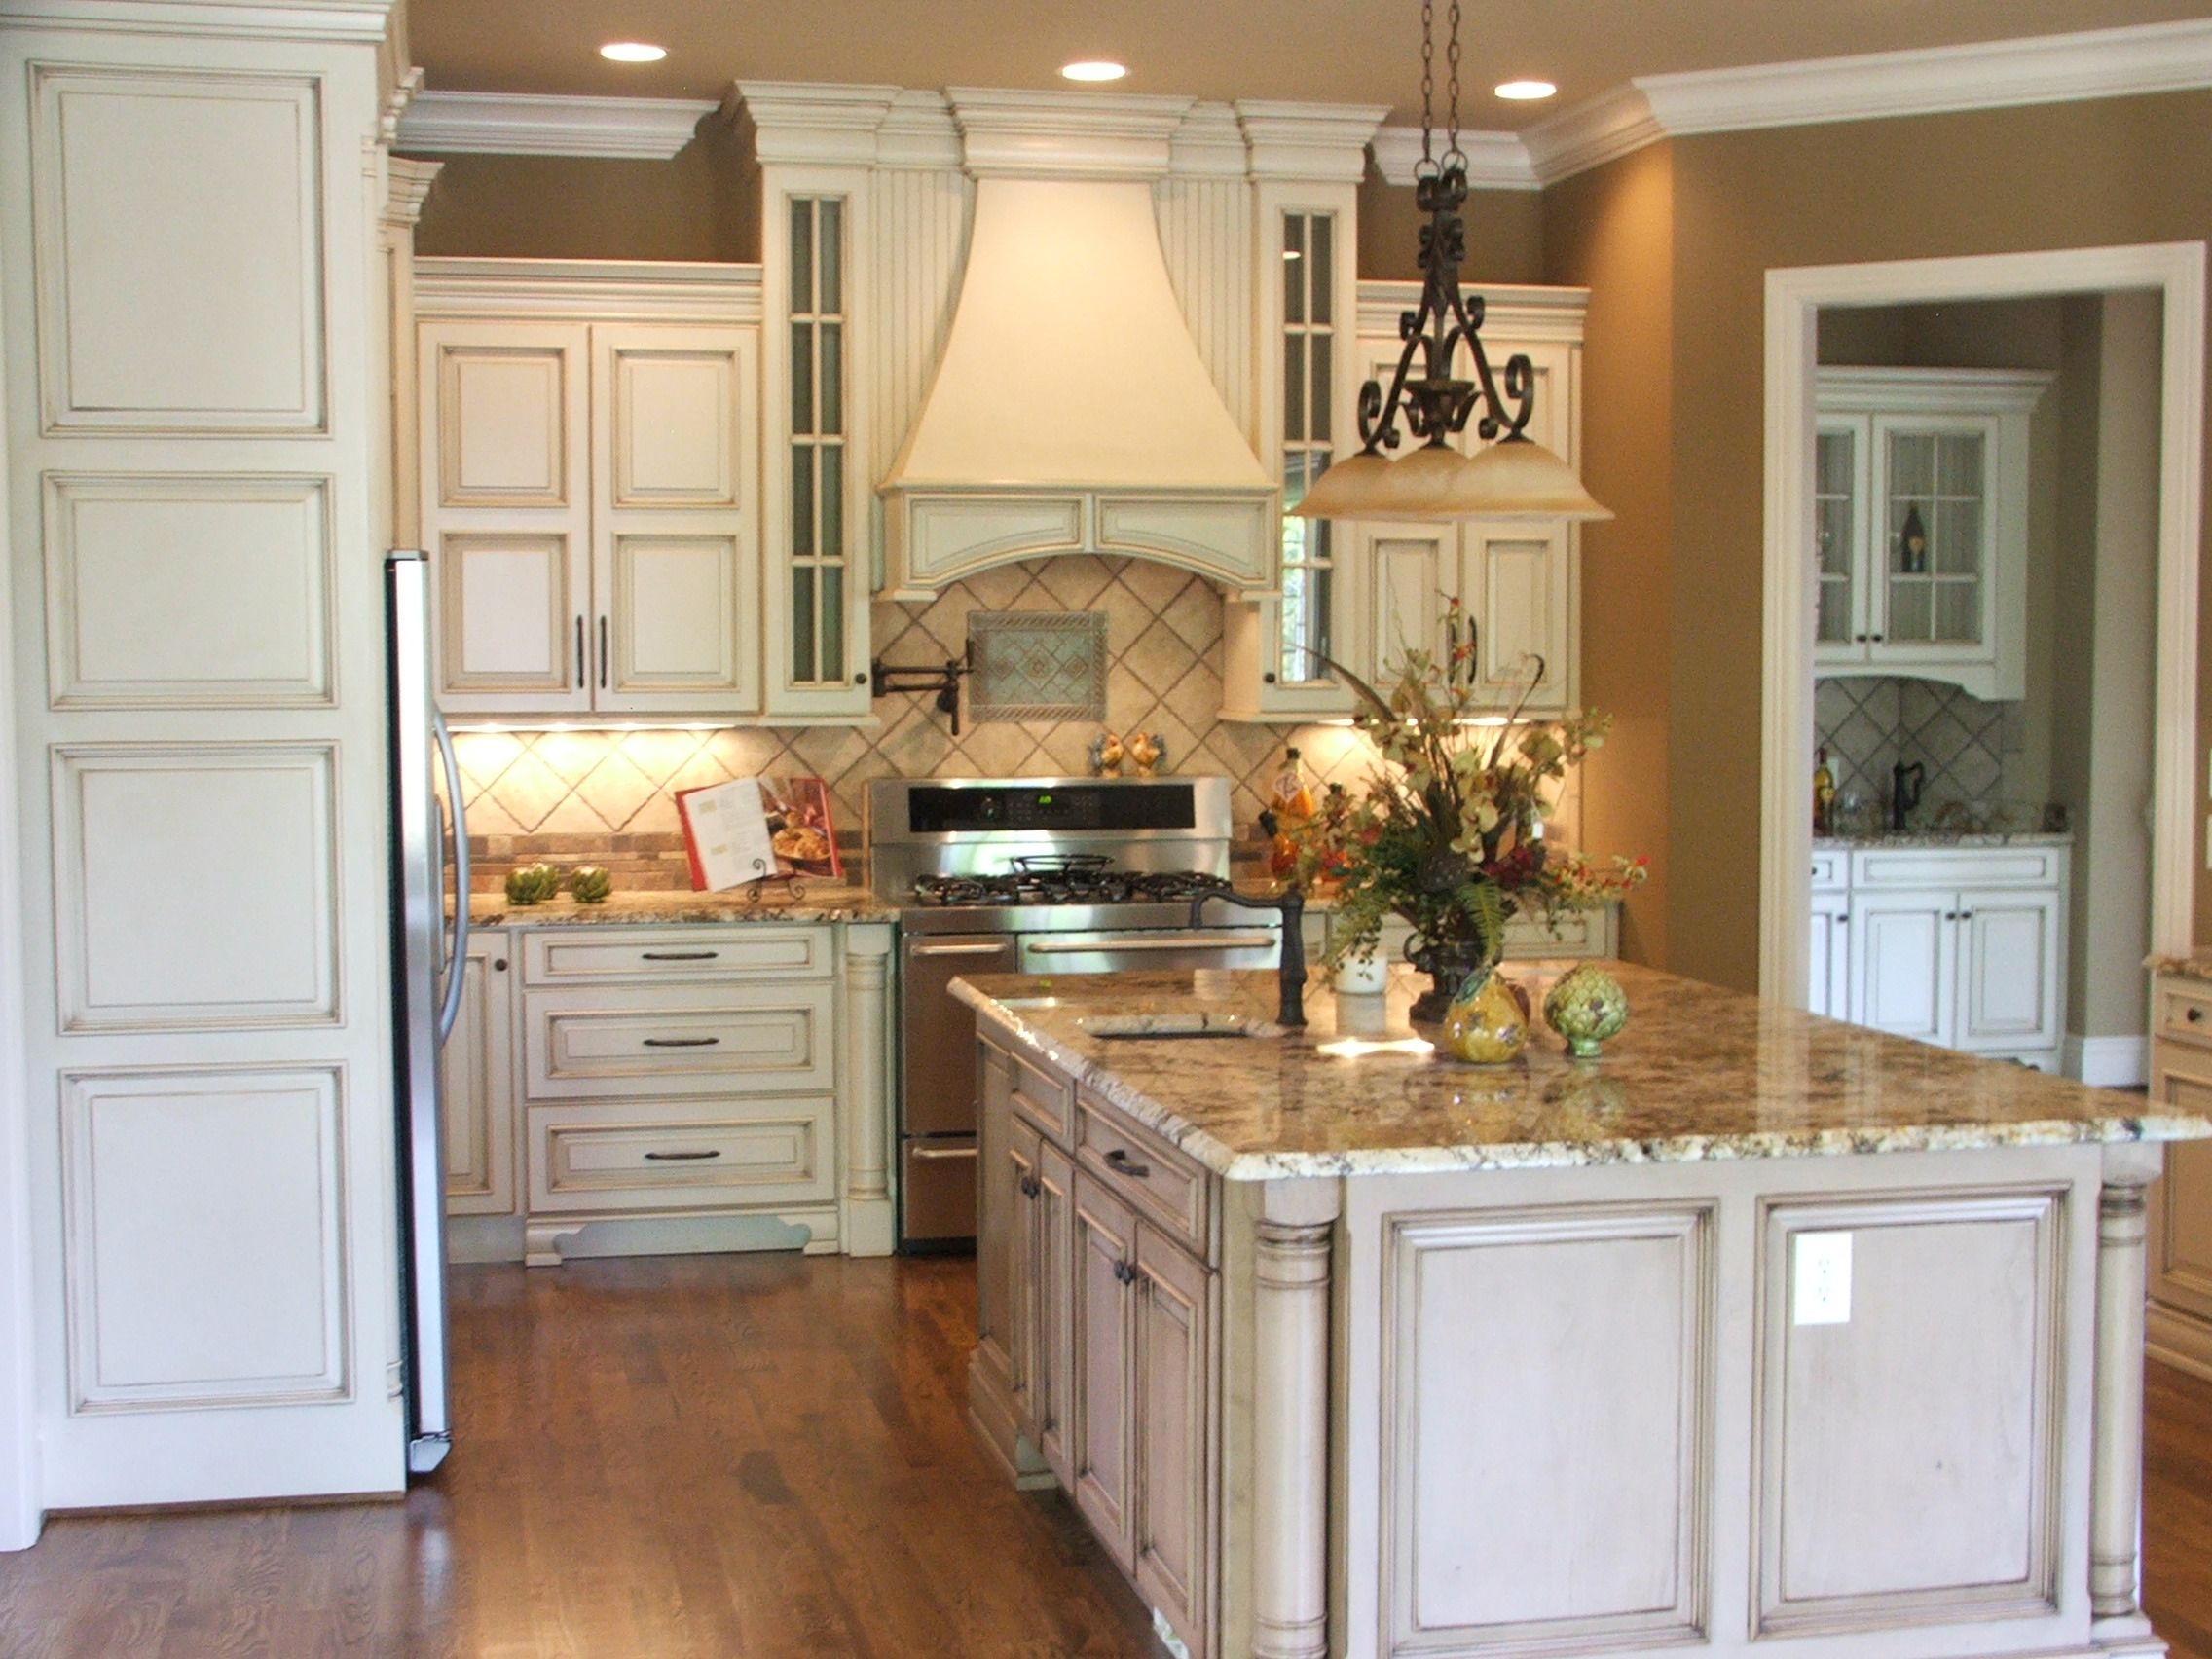 This Kitchen Pulled Out All The Stops What Would You Change About It Custom Cabinets By Dixon Custom Cabinetry In Kerne Kitchen Cool Kitchens Custom Cabinets